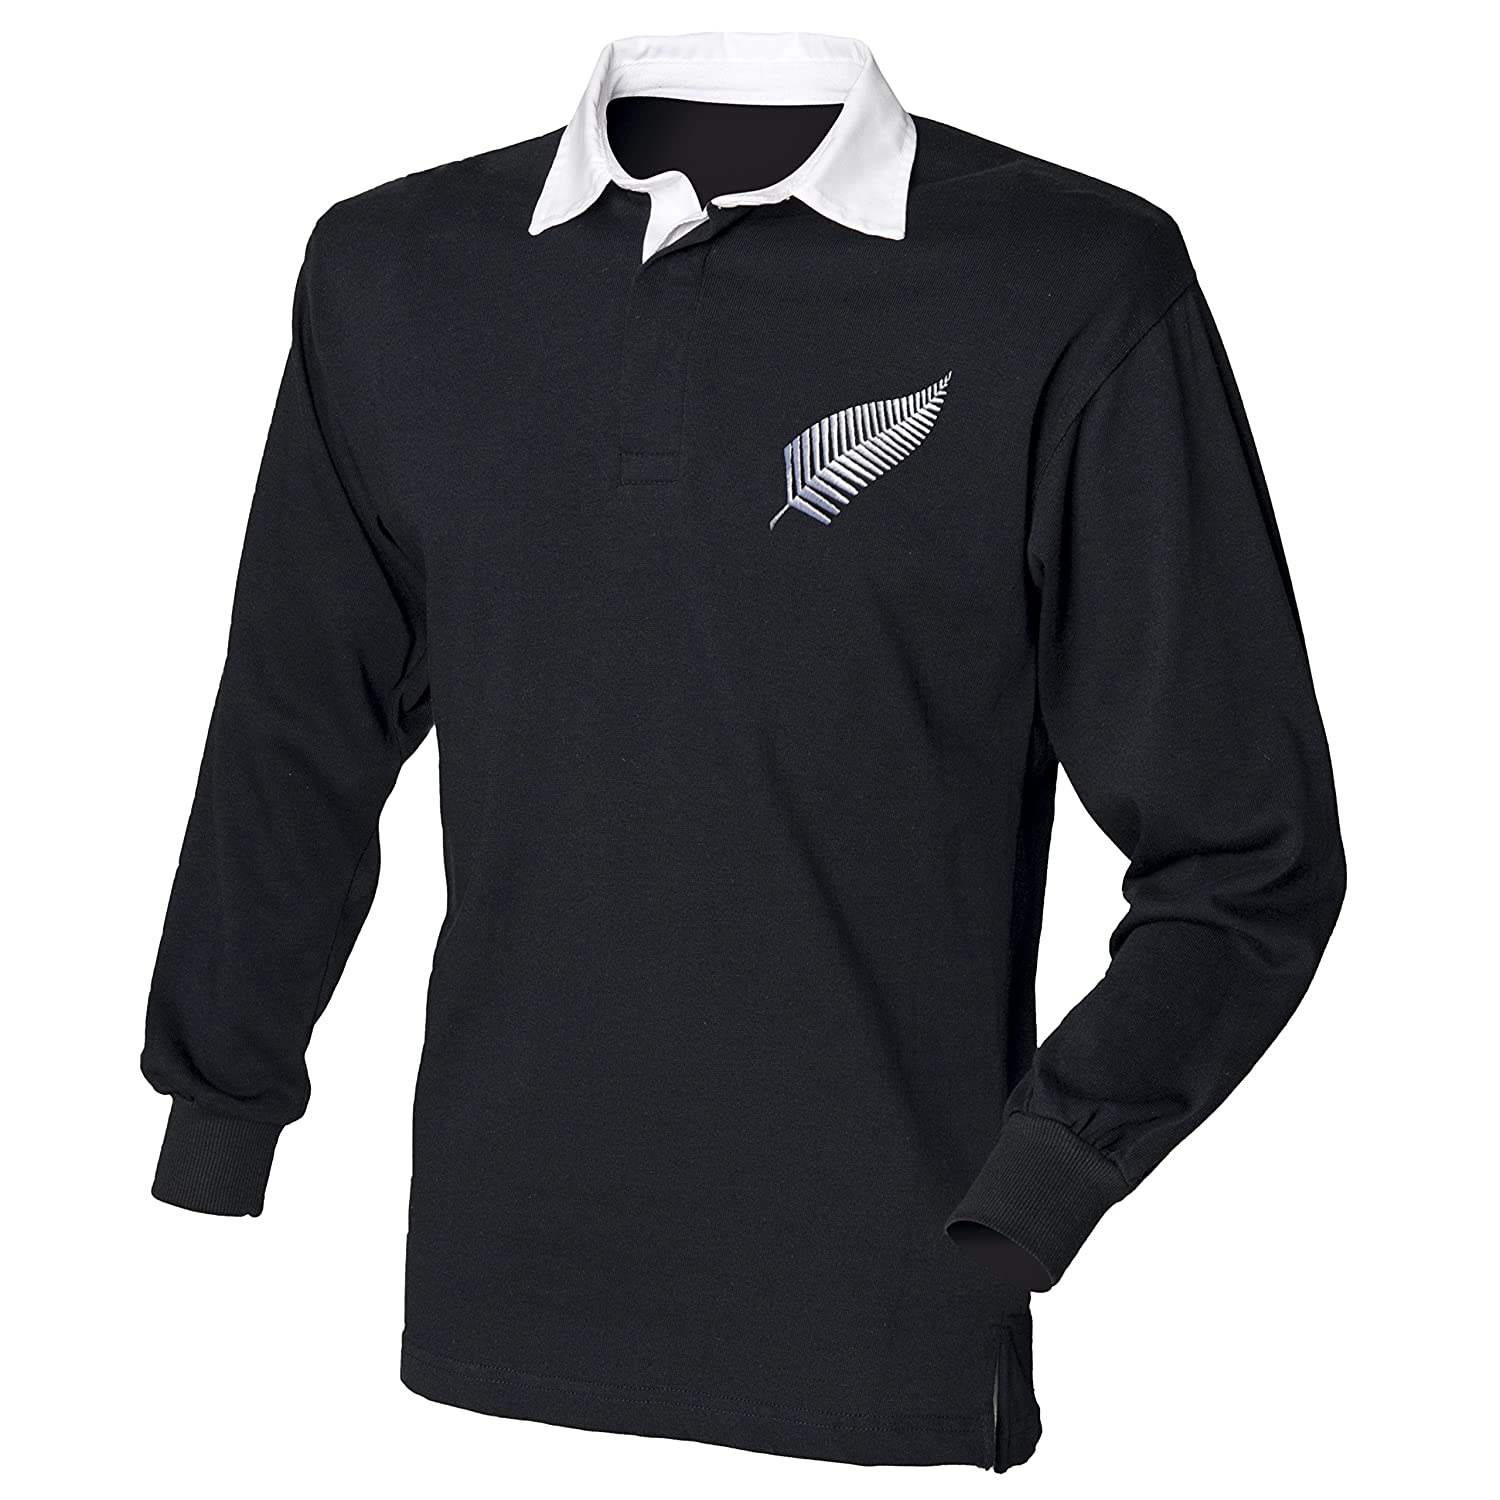 KC INKS New Zealand All Blacks Rugby Shirt with Free Personalization